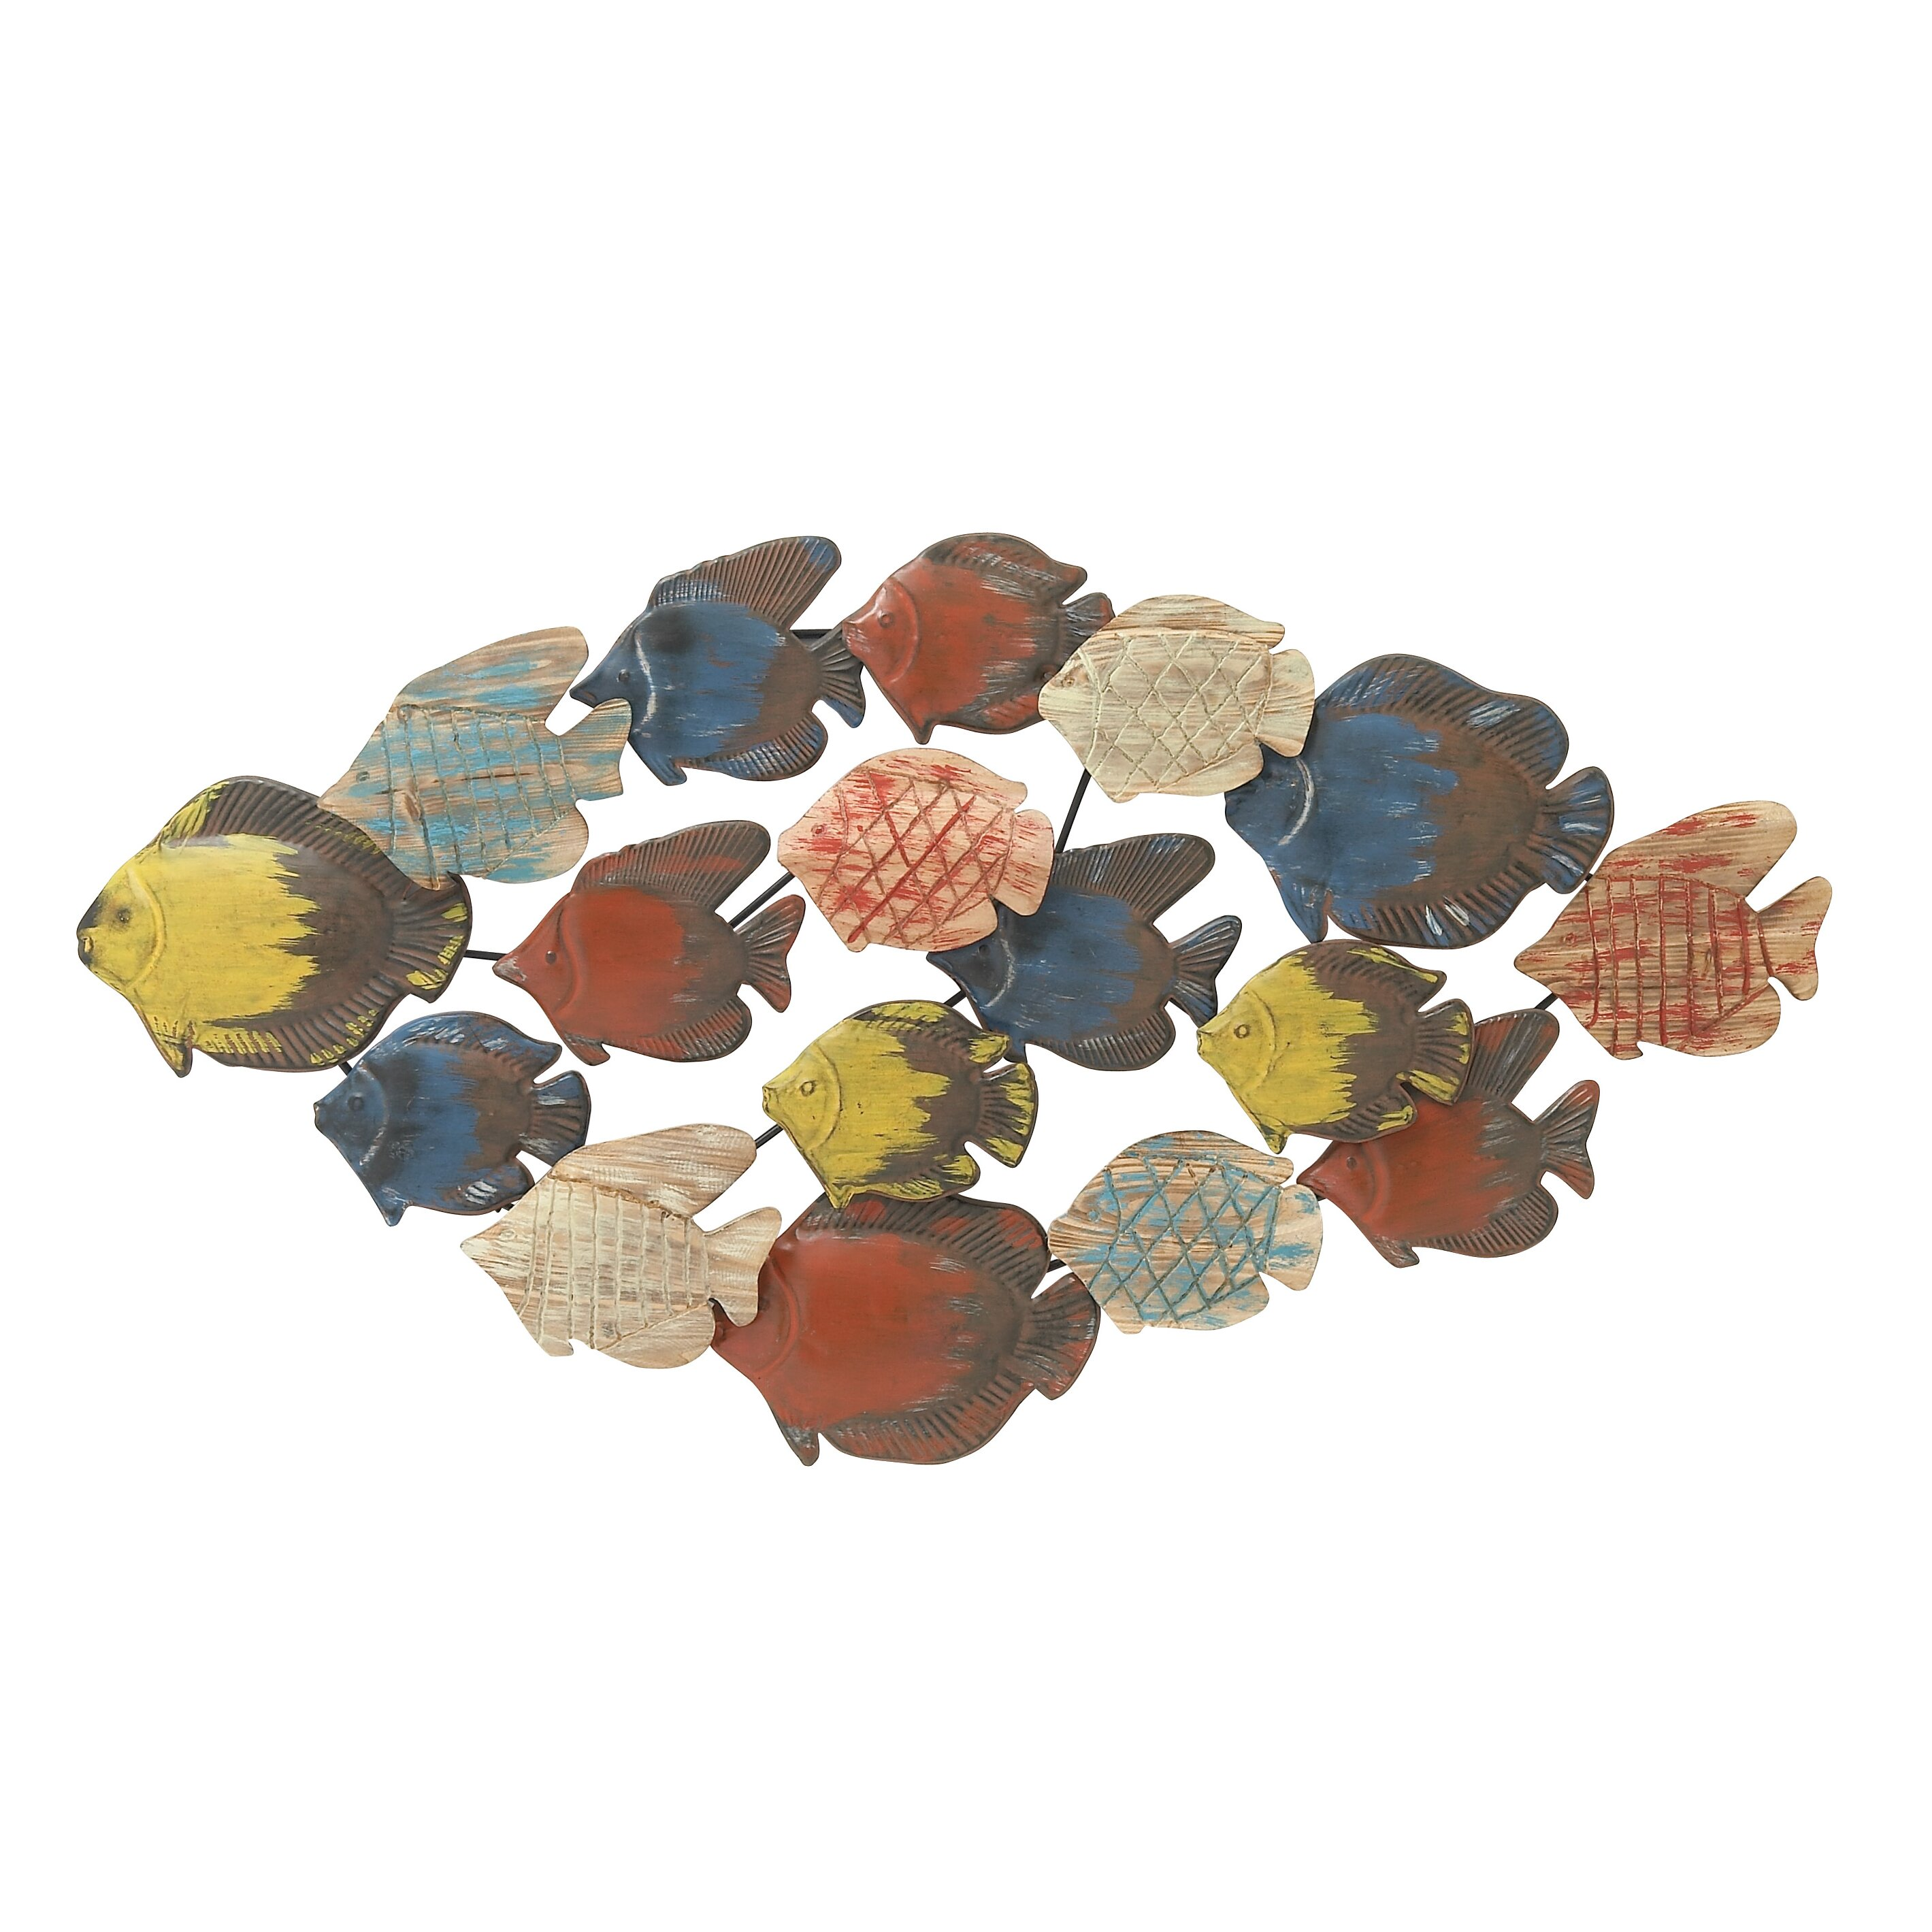 Woodland imports fish wall d cor reviews wayfair for Fish wall decor